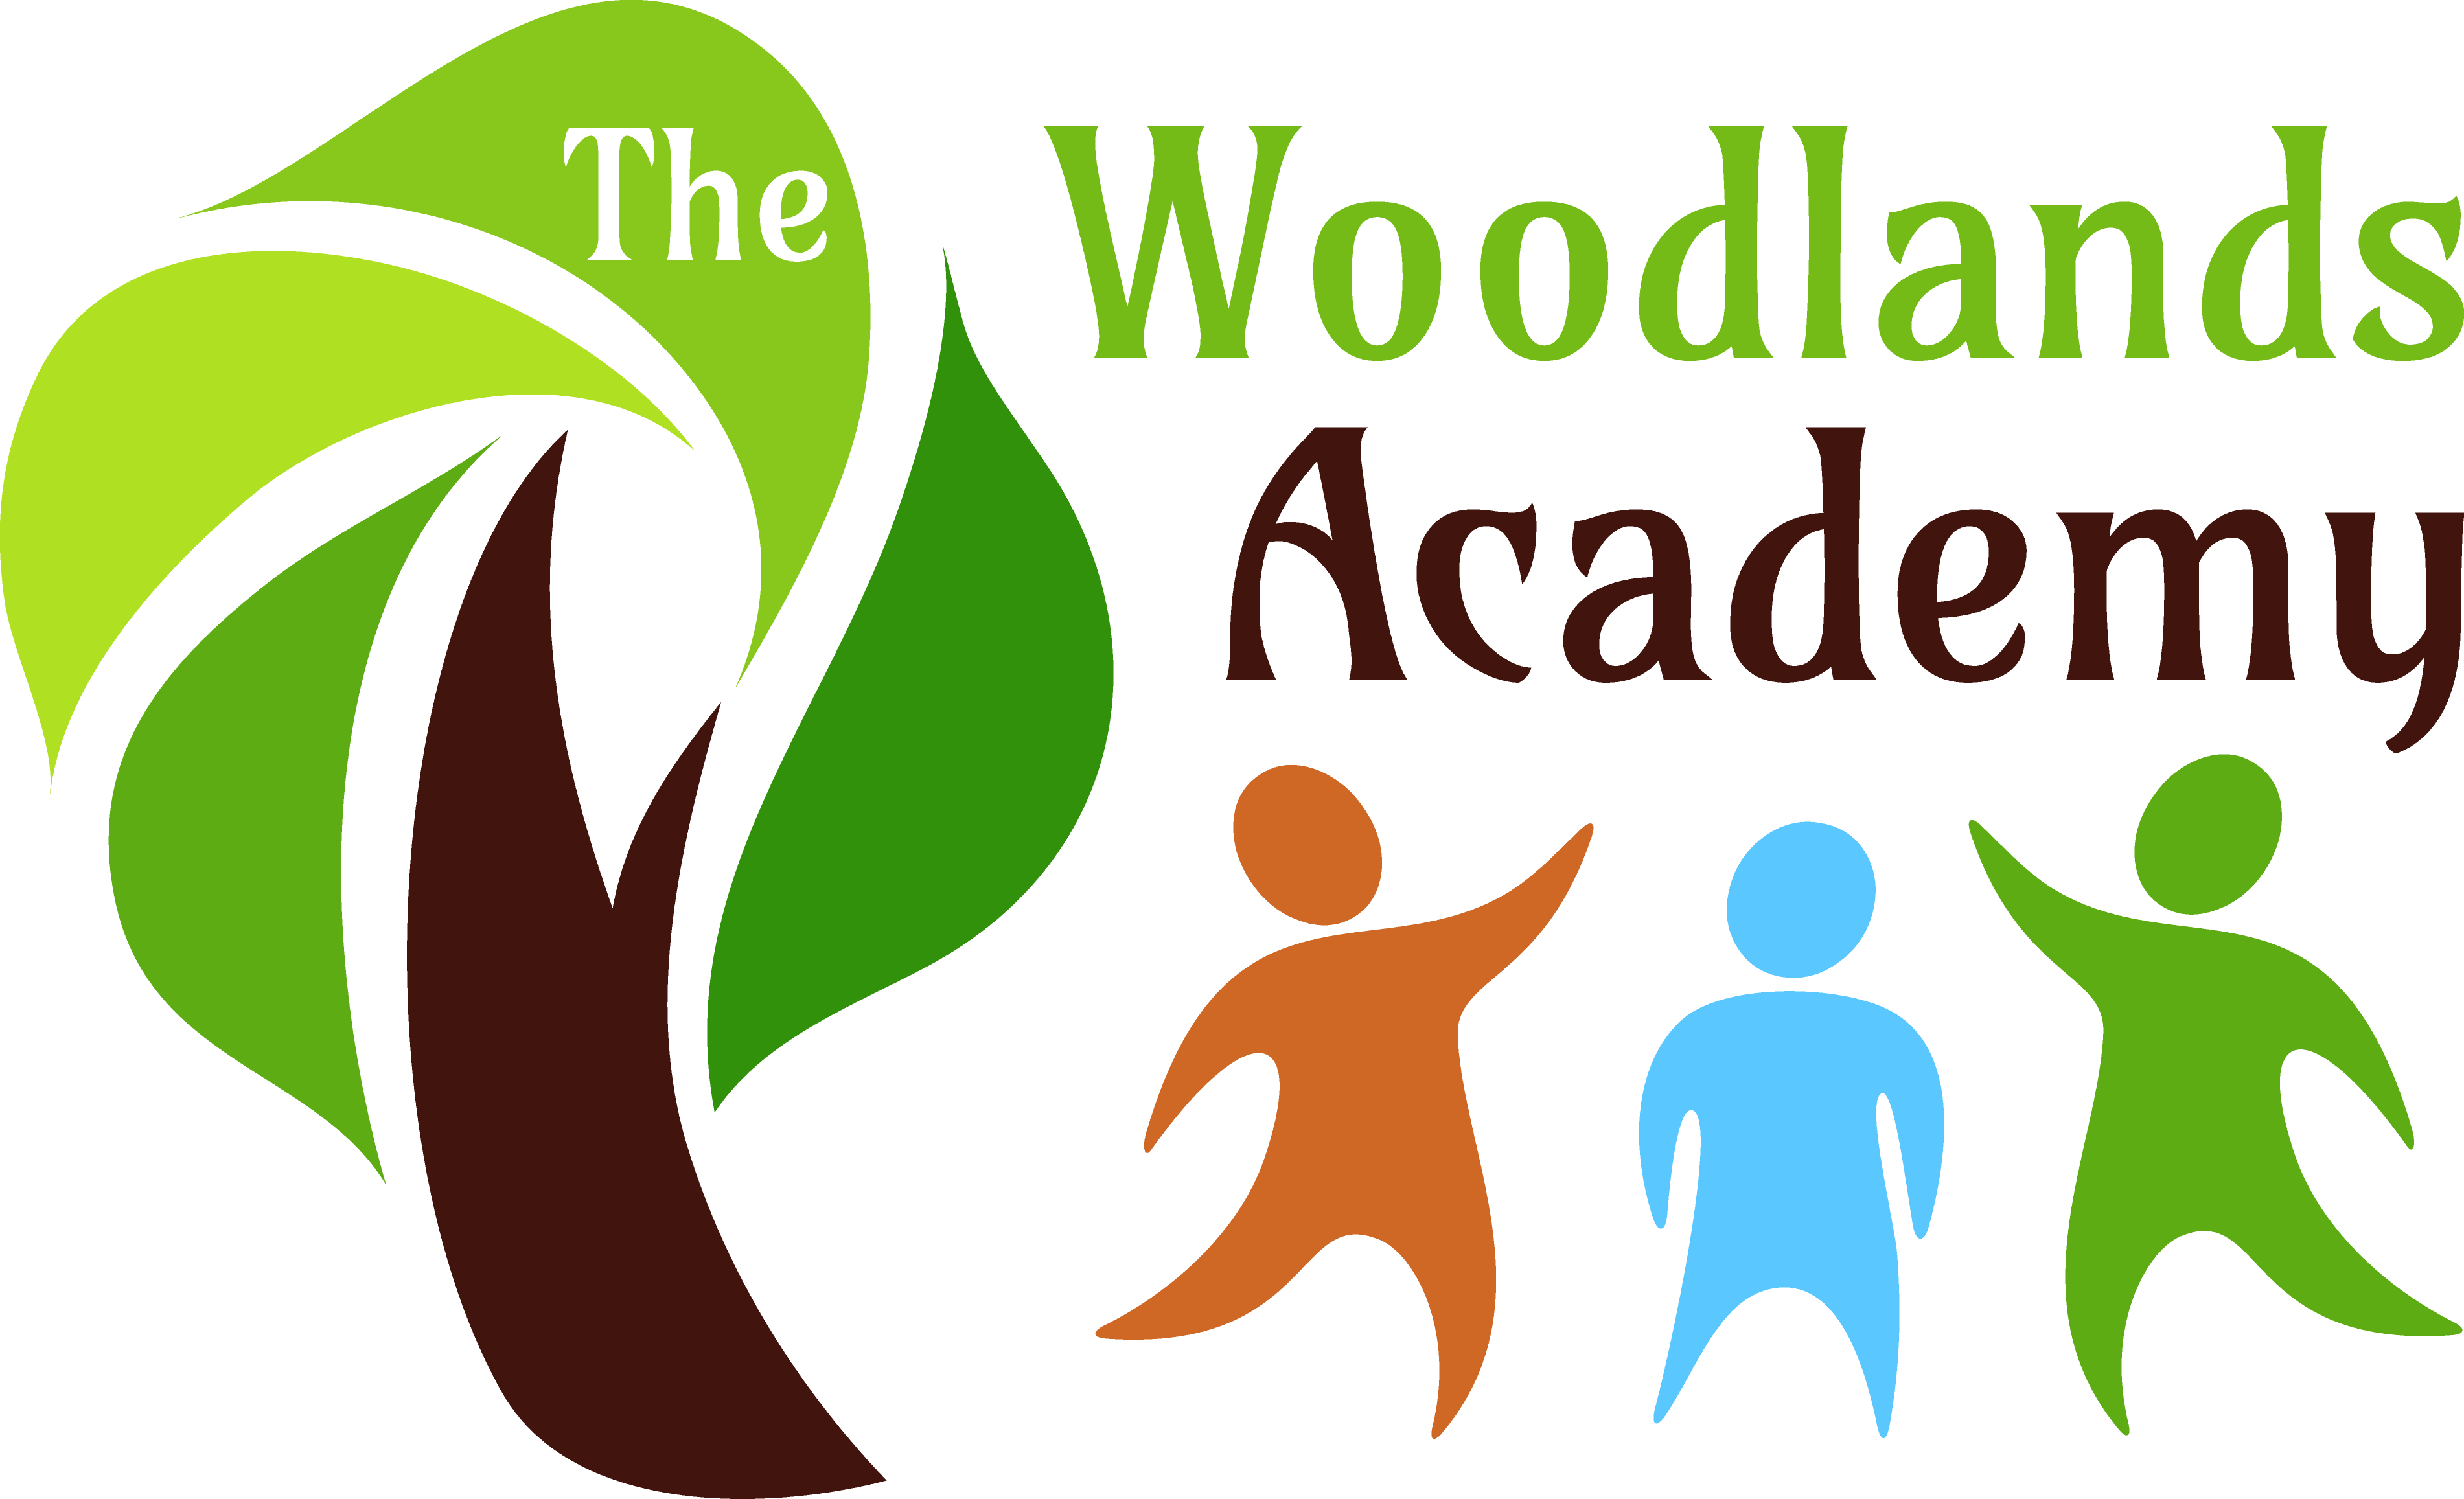 Link to Woodlands Academy website